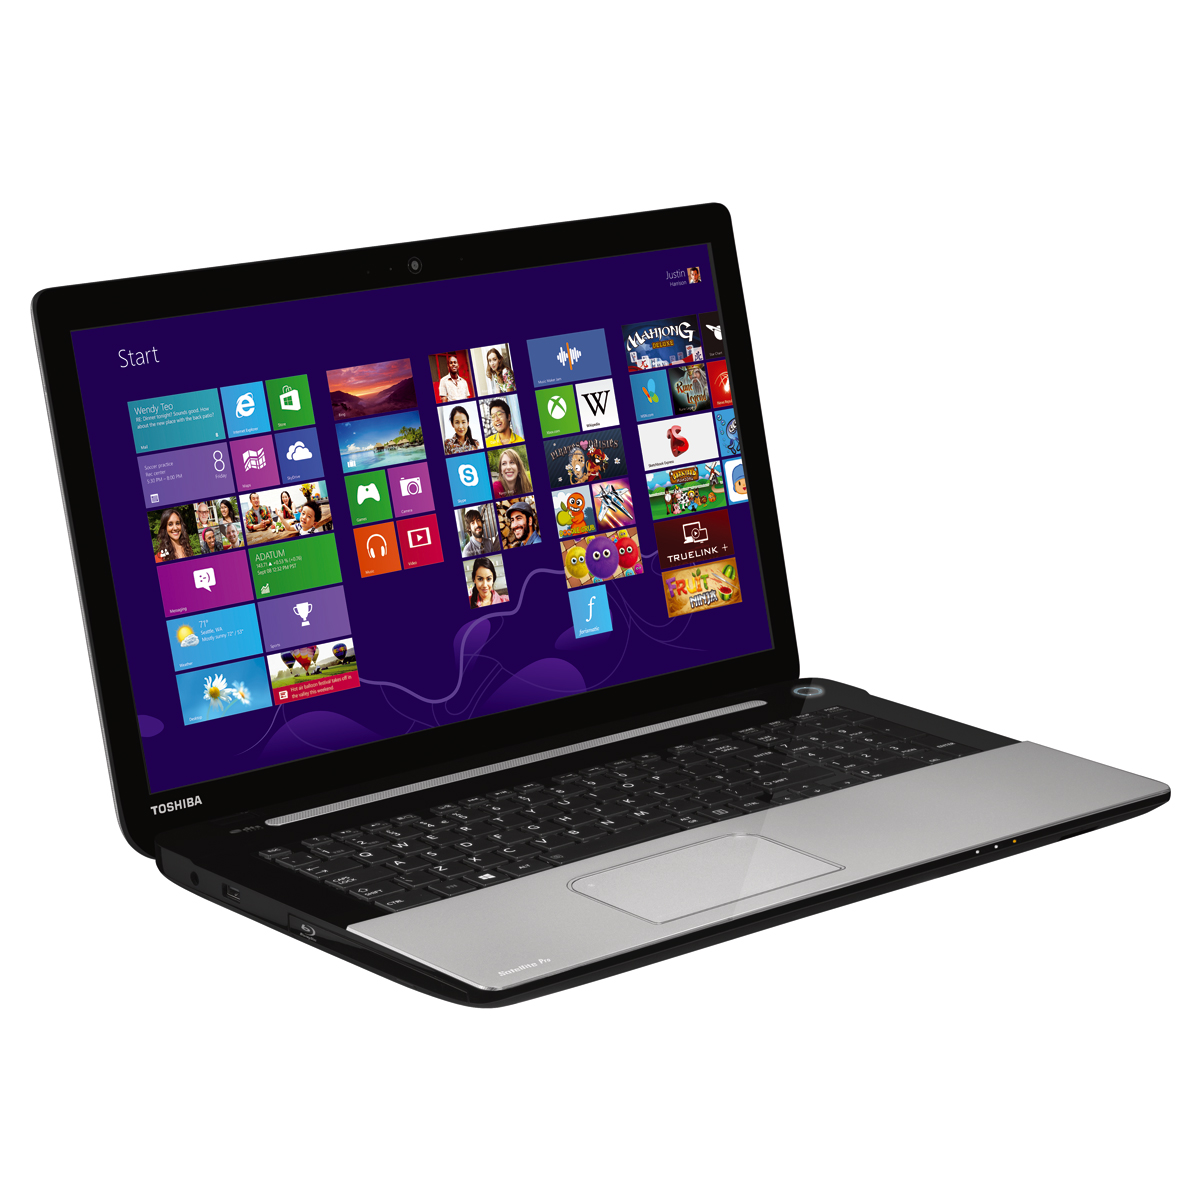 "PC portable Toshiba Satellite Pro L70-A-13R Intel Core i3-4000M 4 Go 750 Go 17.3"" LED NVIDIA GeForce GT 740M Graveur DVD Wi-Fi N/Bluetooth Webcam Windows 8.1 64 bits"